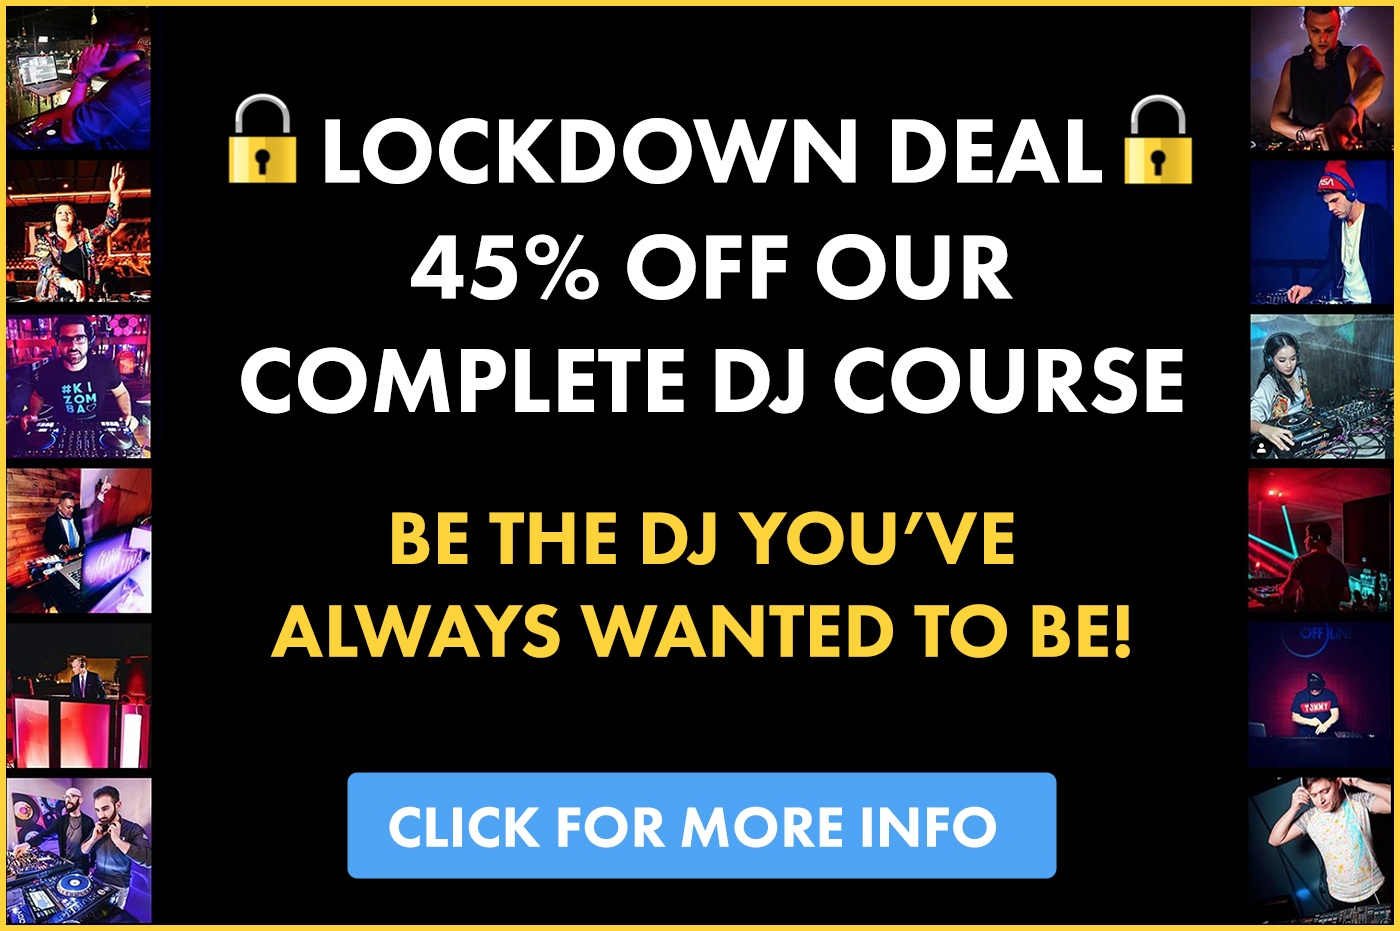 The Complete DJ Course